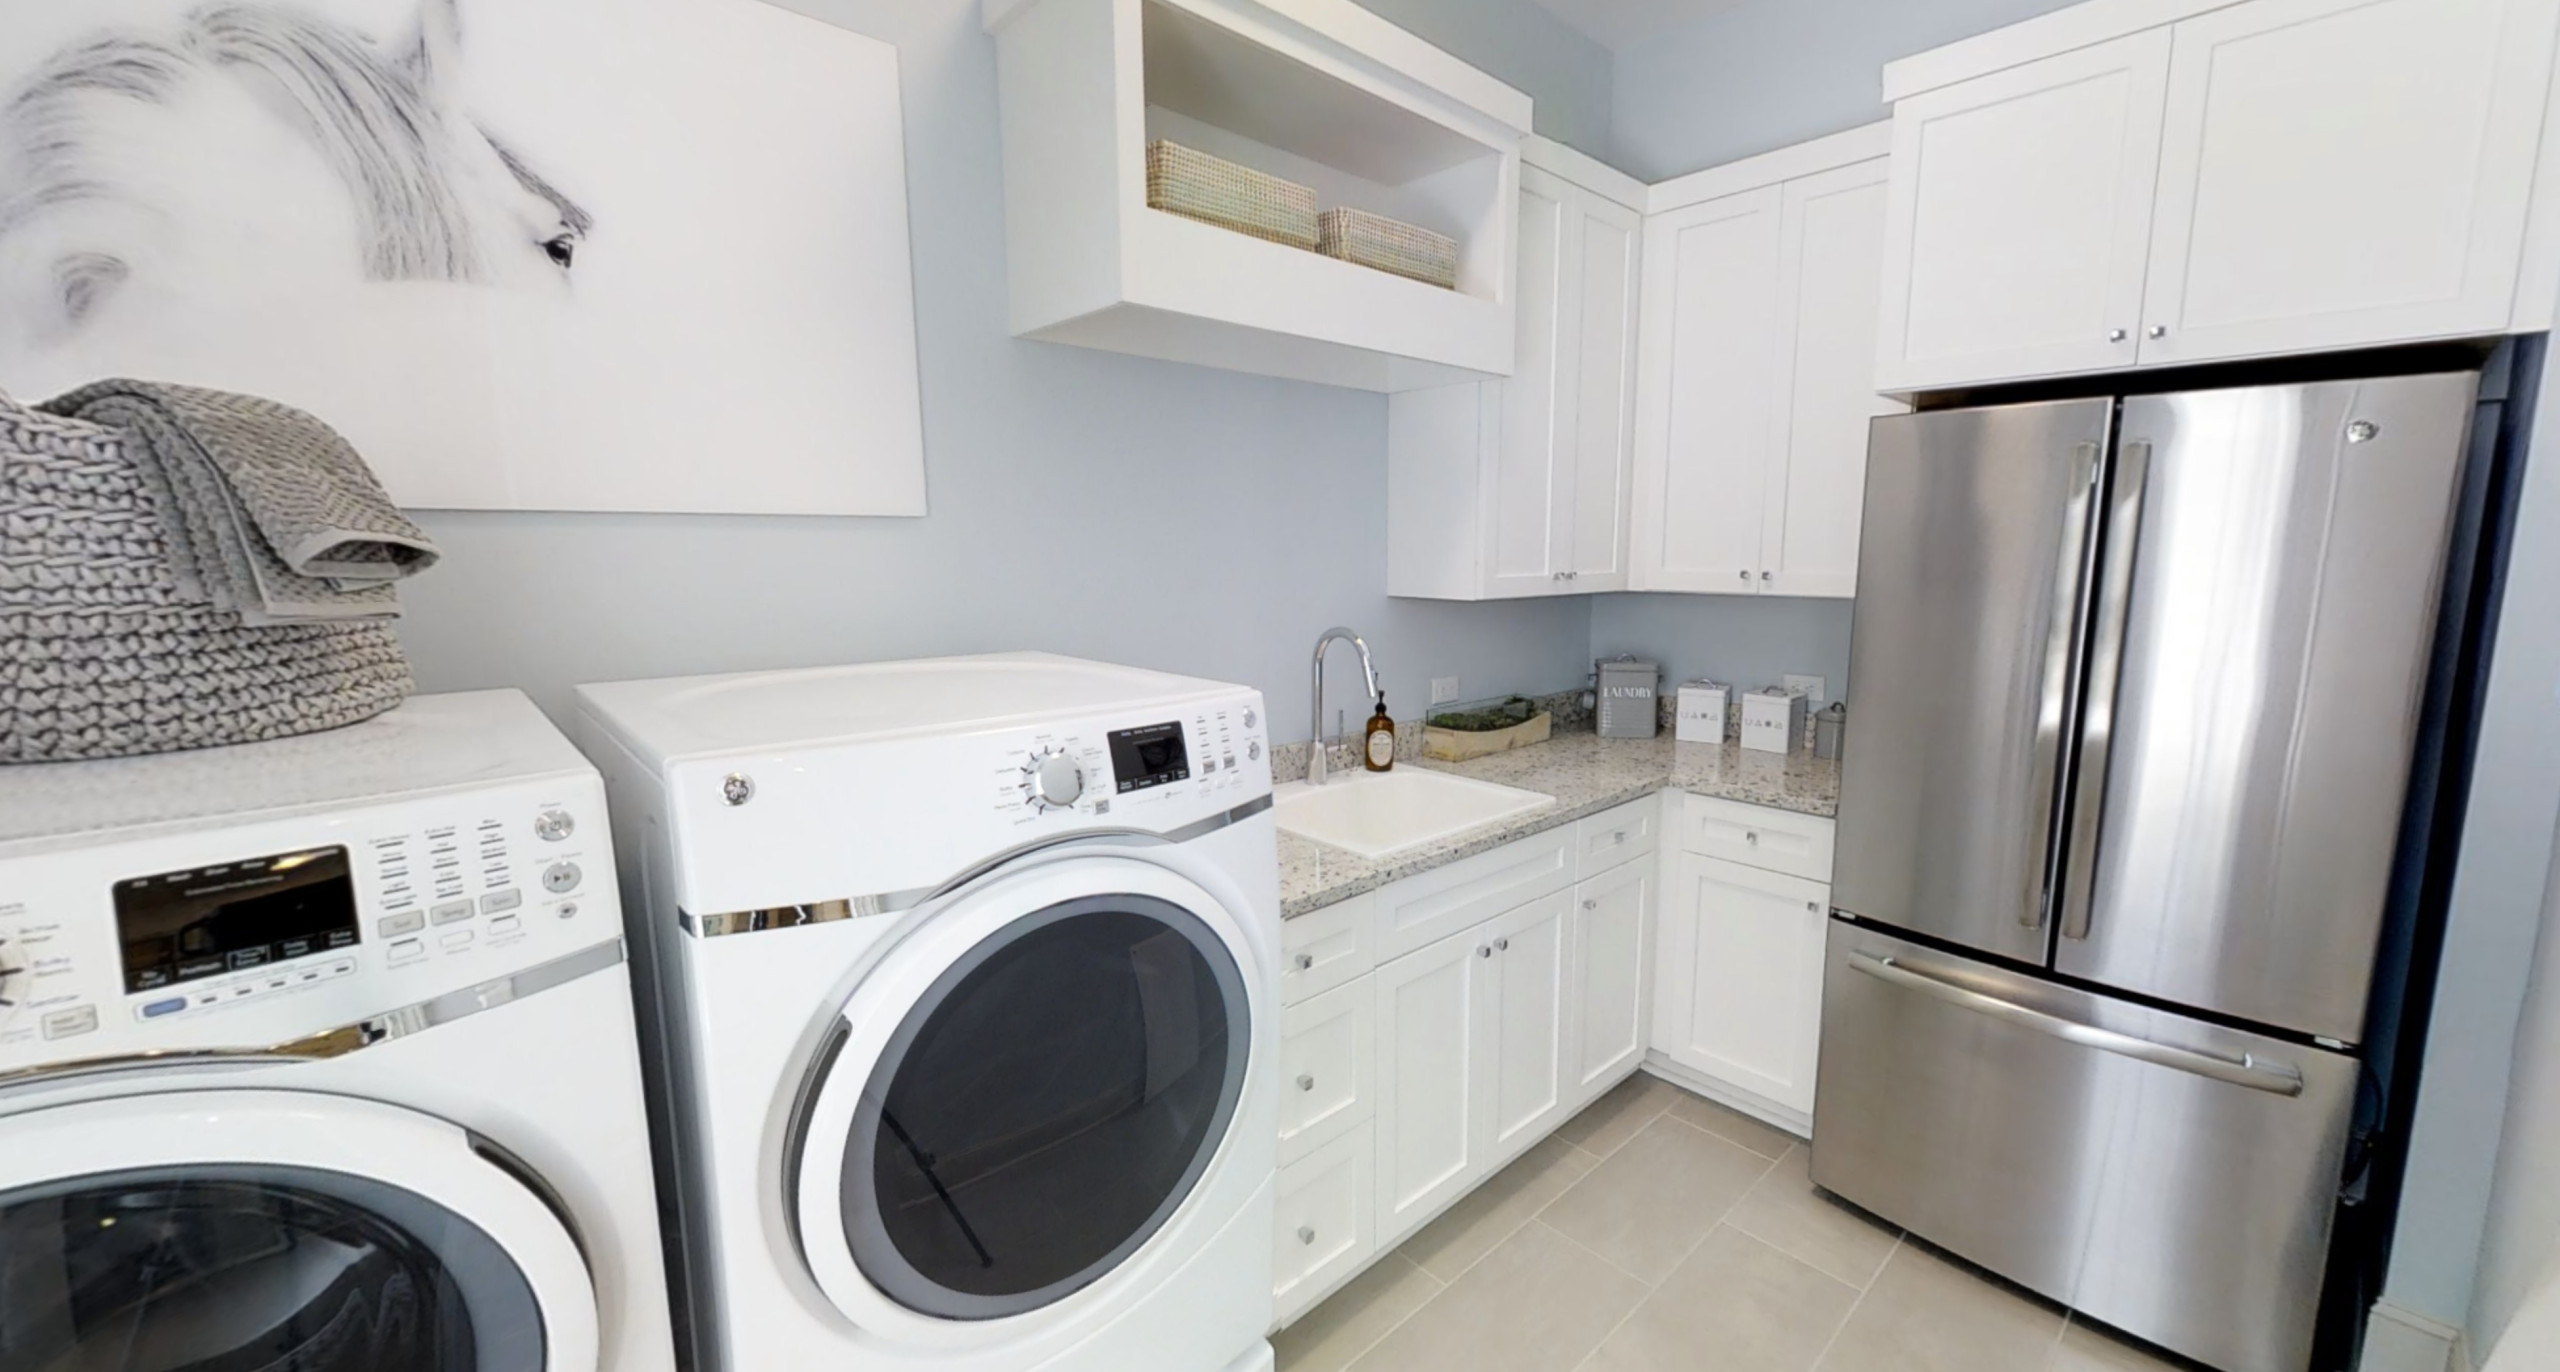 Kitchen, Bathroom, Laundry Room w/ AR Homes